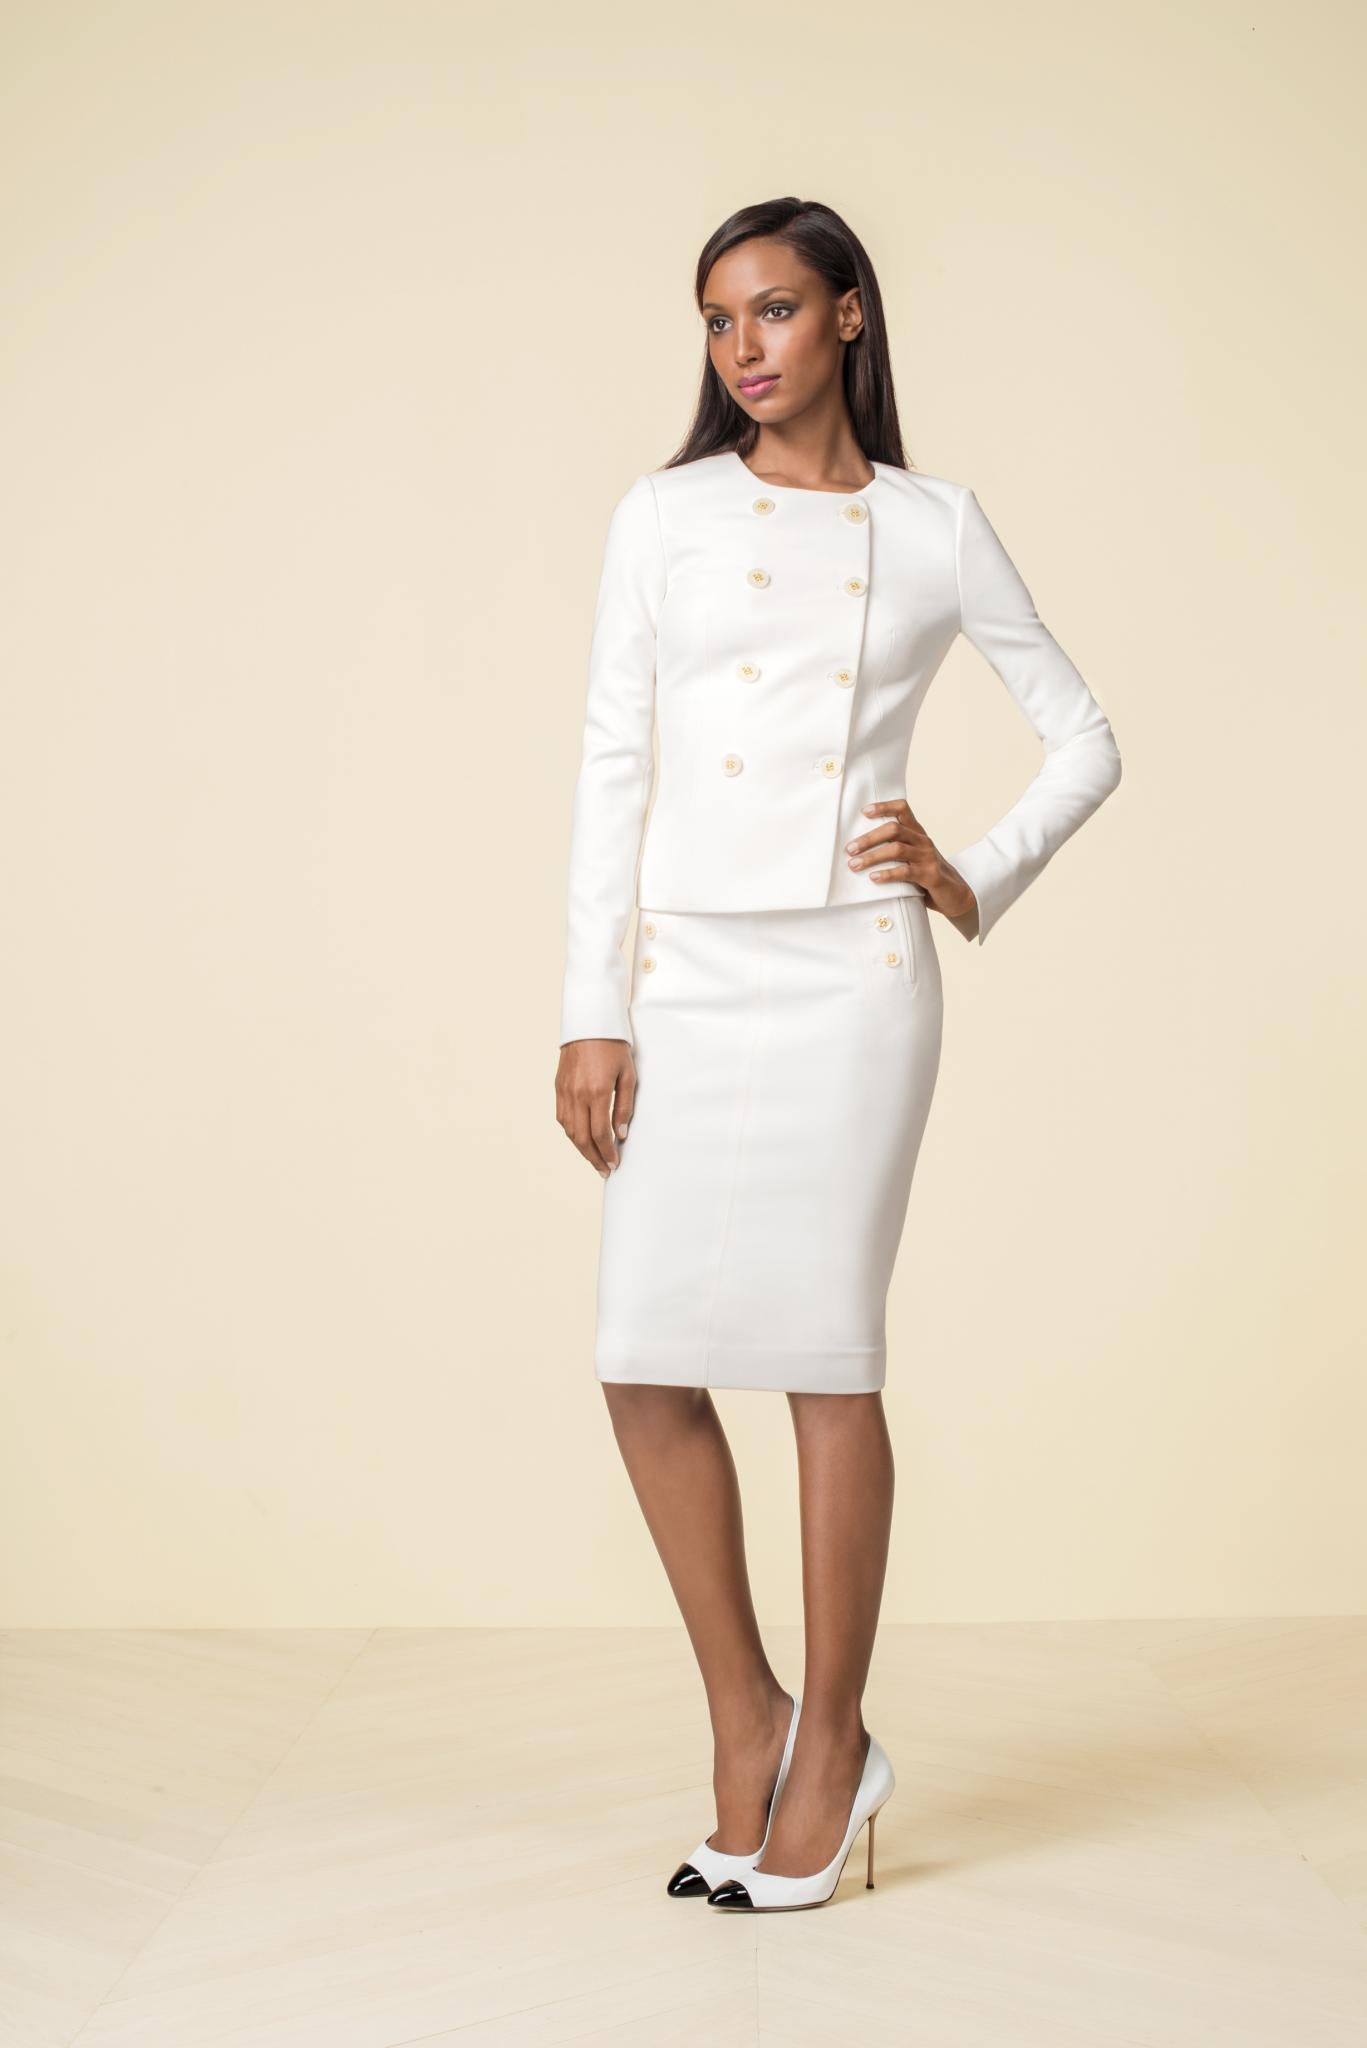 67d611db The Limited Scandal Collection. Double Breasted Jacket, $158, Officers  Pencil Skirt, $79 at thelimited.com.